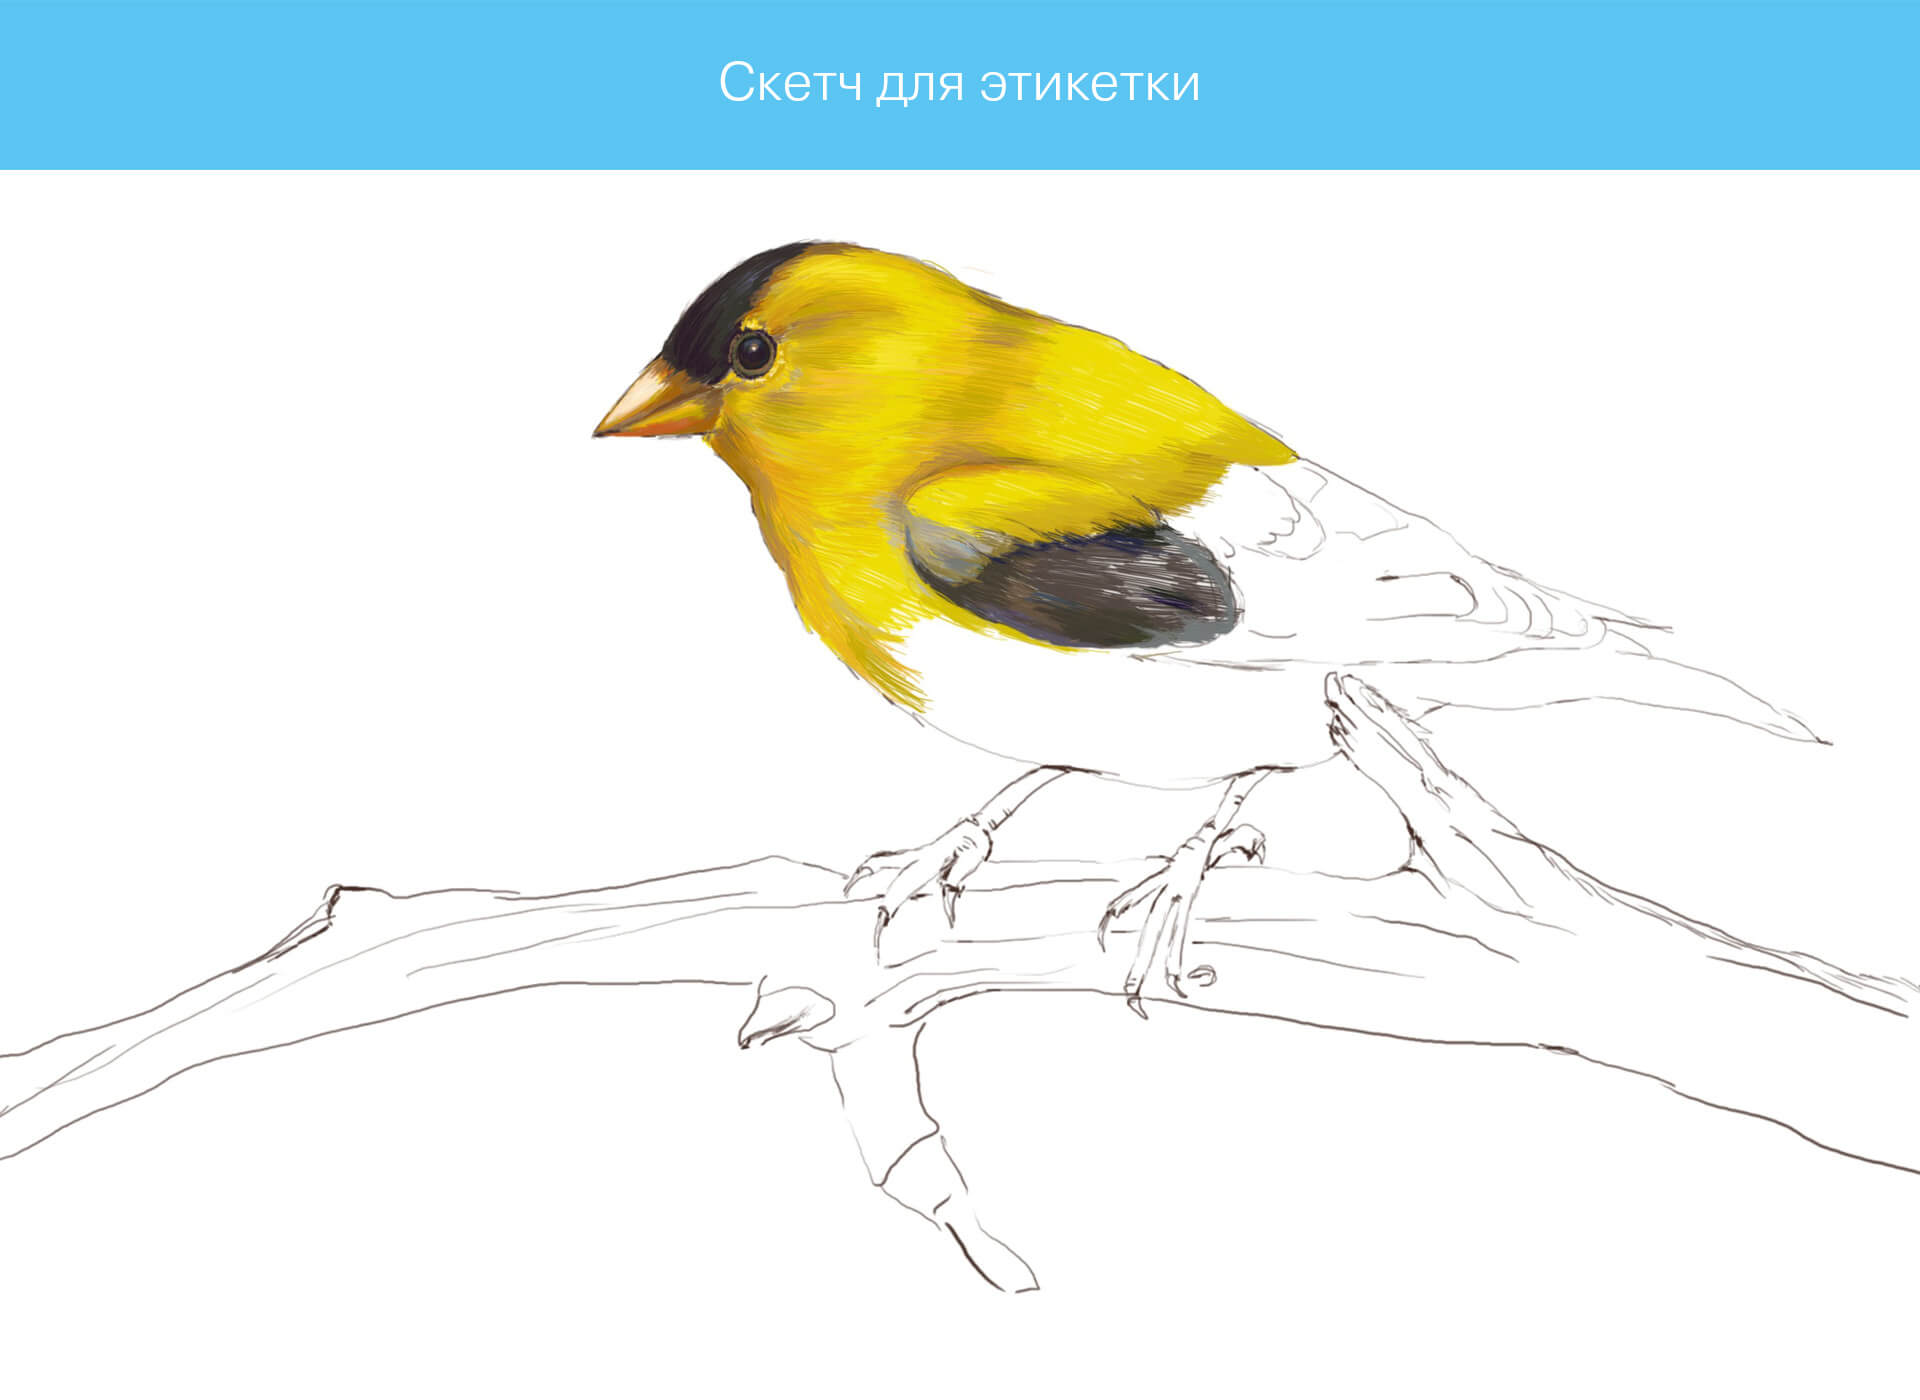 prokochuk_irina_illustration_bird_1